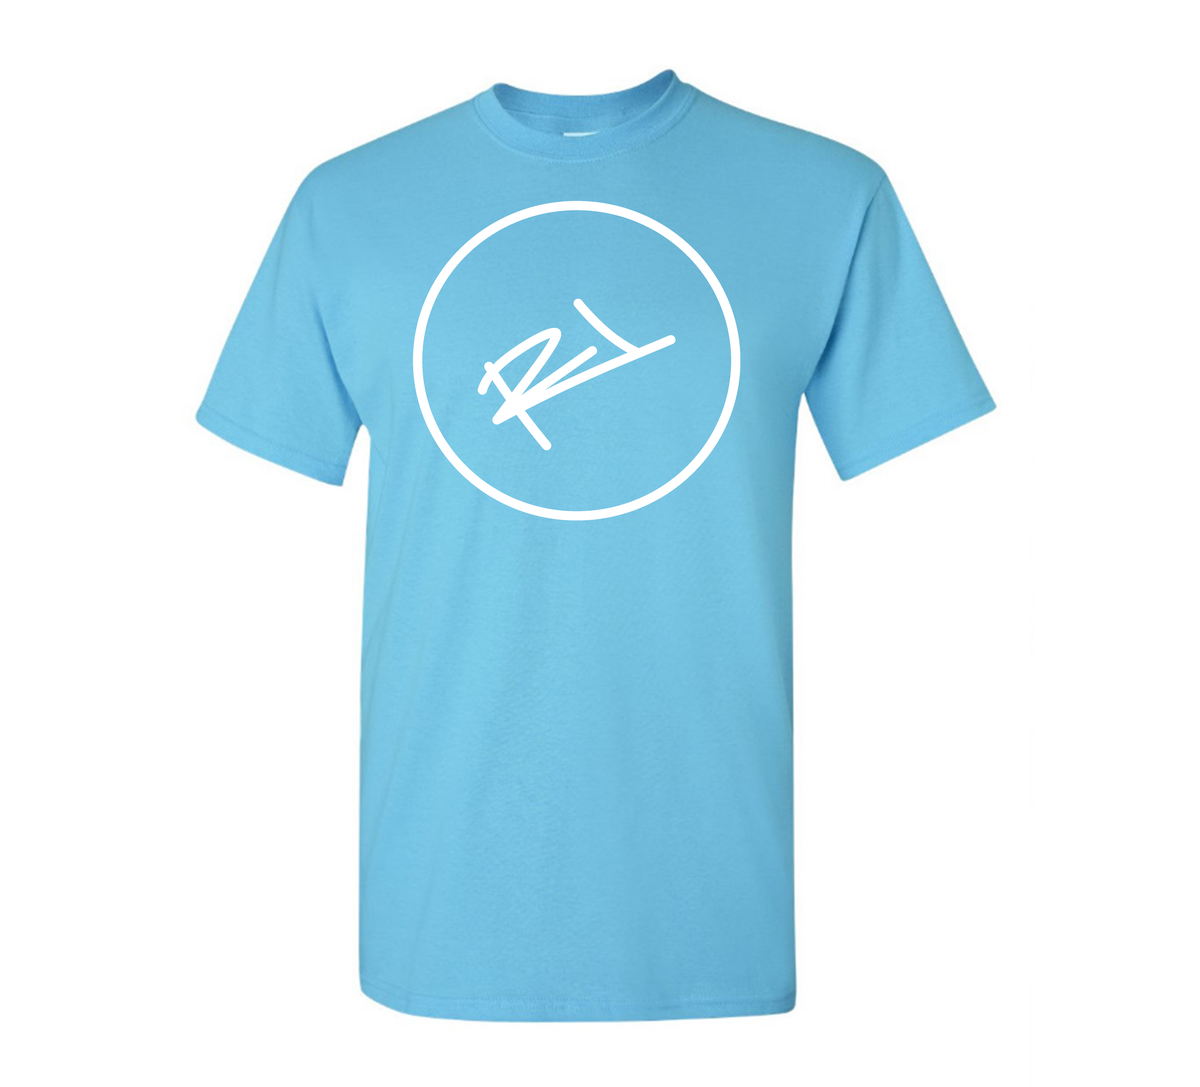 Image of THE ReL BRAND LOGO TEE IN TEAL